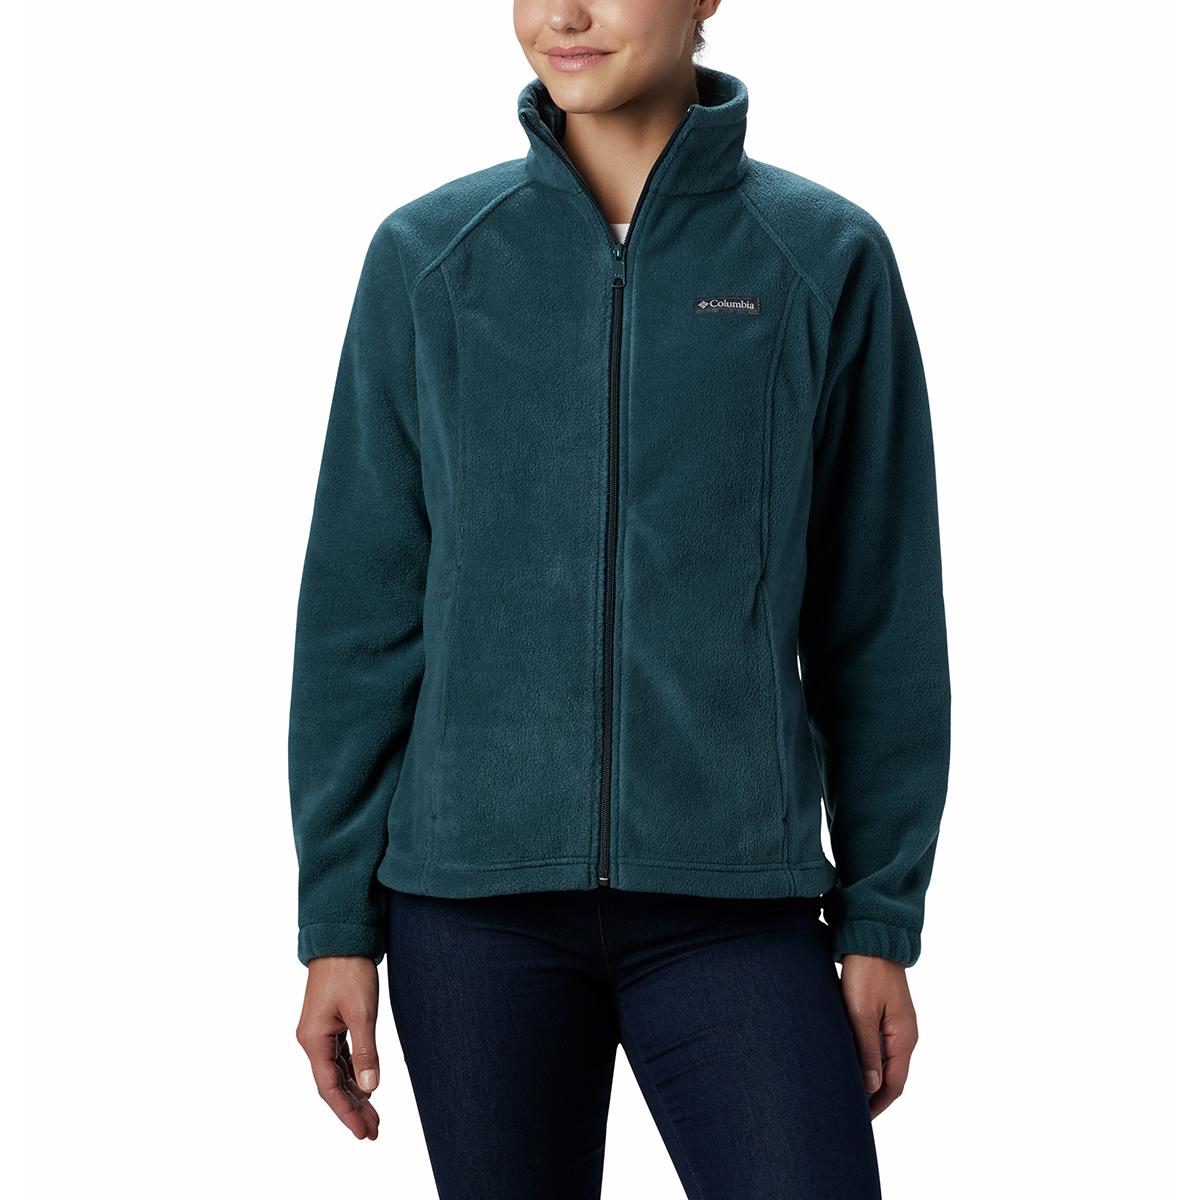 Columbia Women's Benton Springs Fleece Jacket - Blue, S